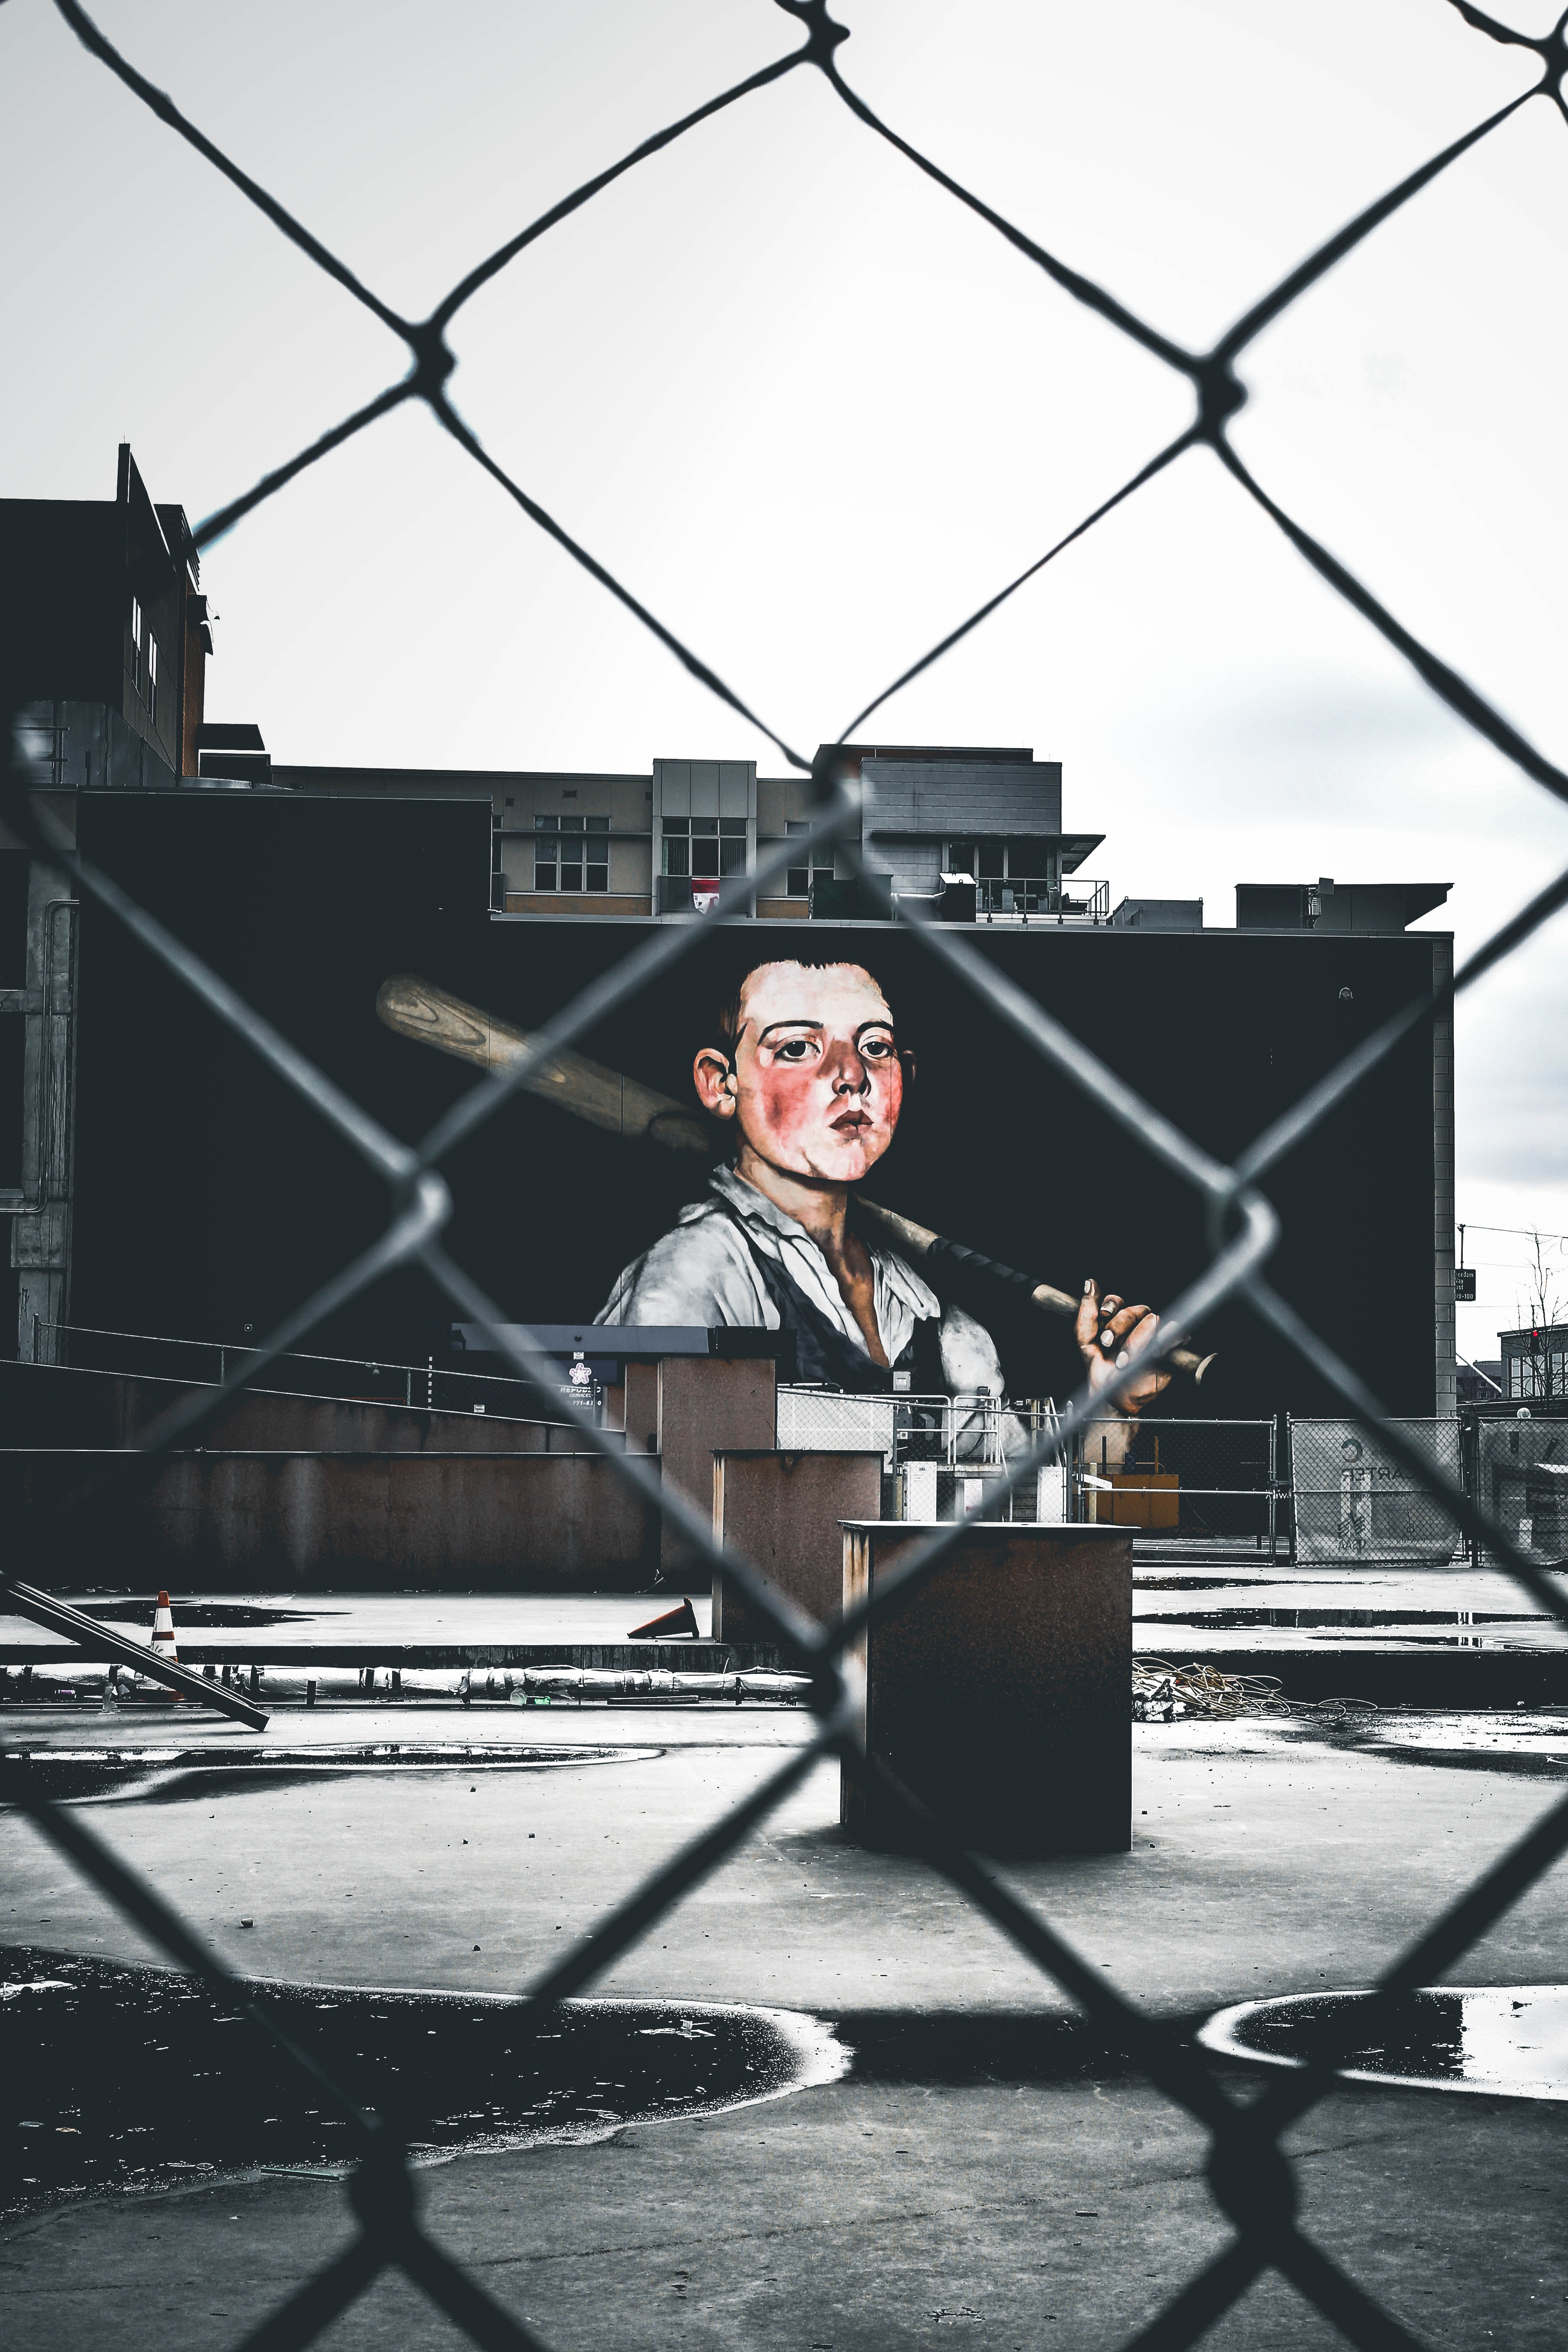 The view of art of man with baseball bat from a chain fence of an urban building